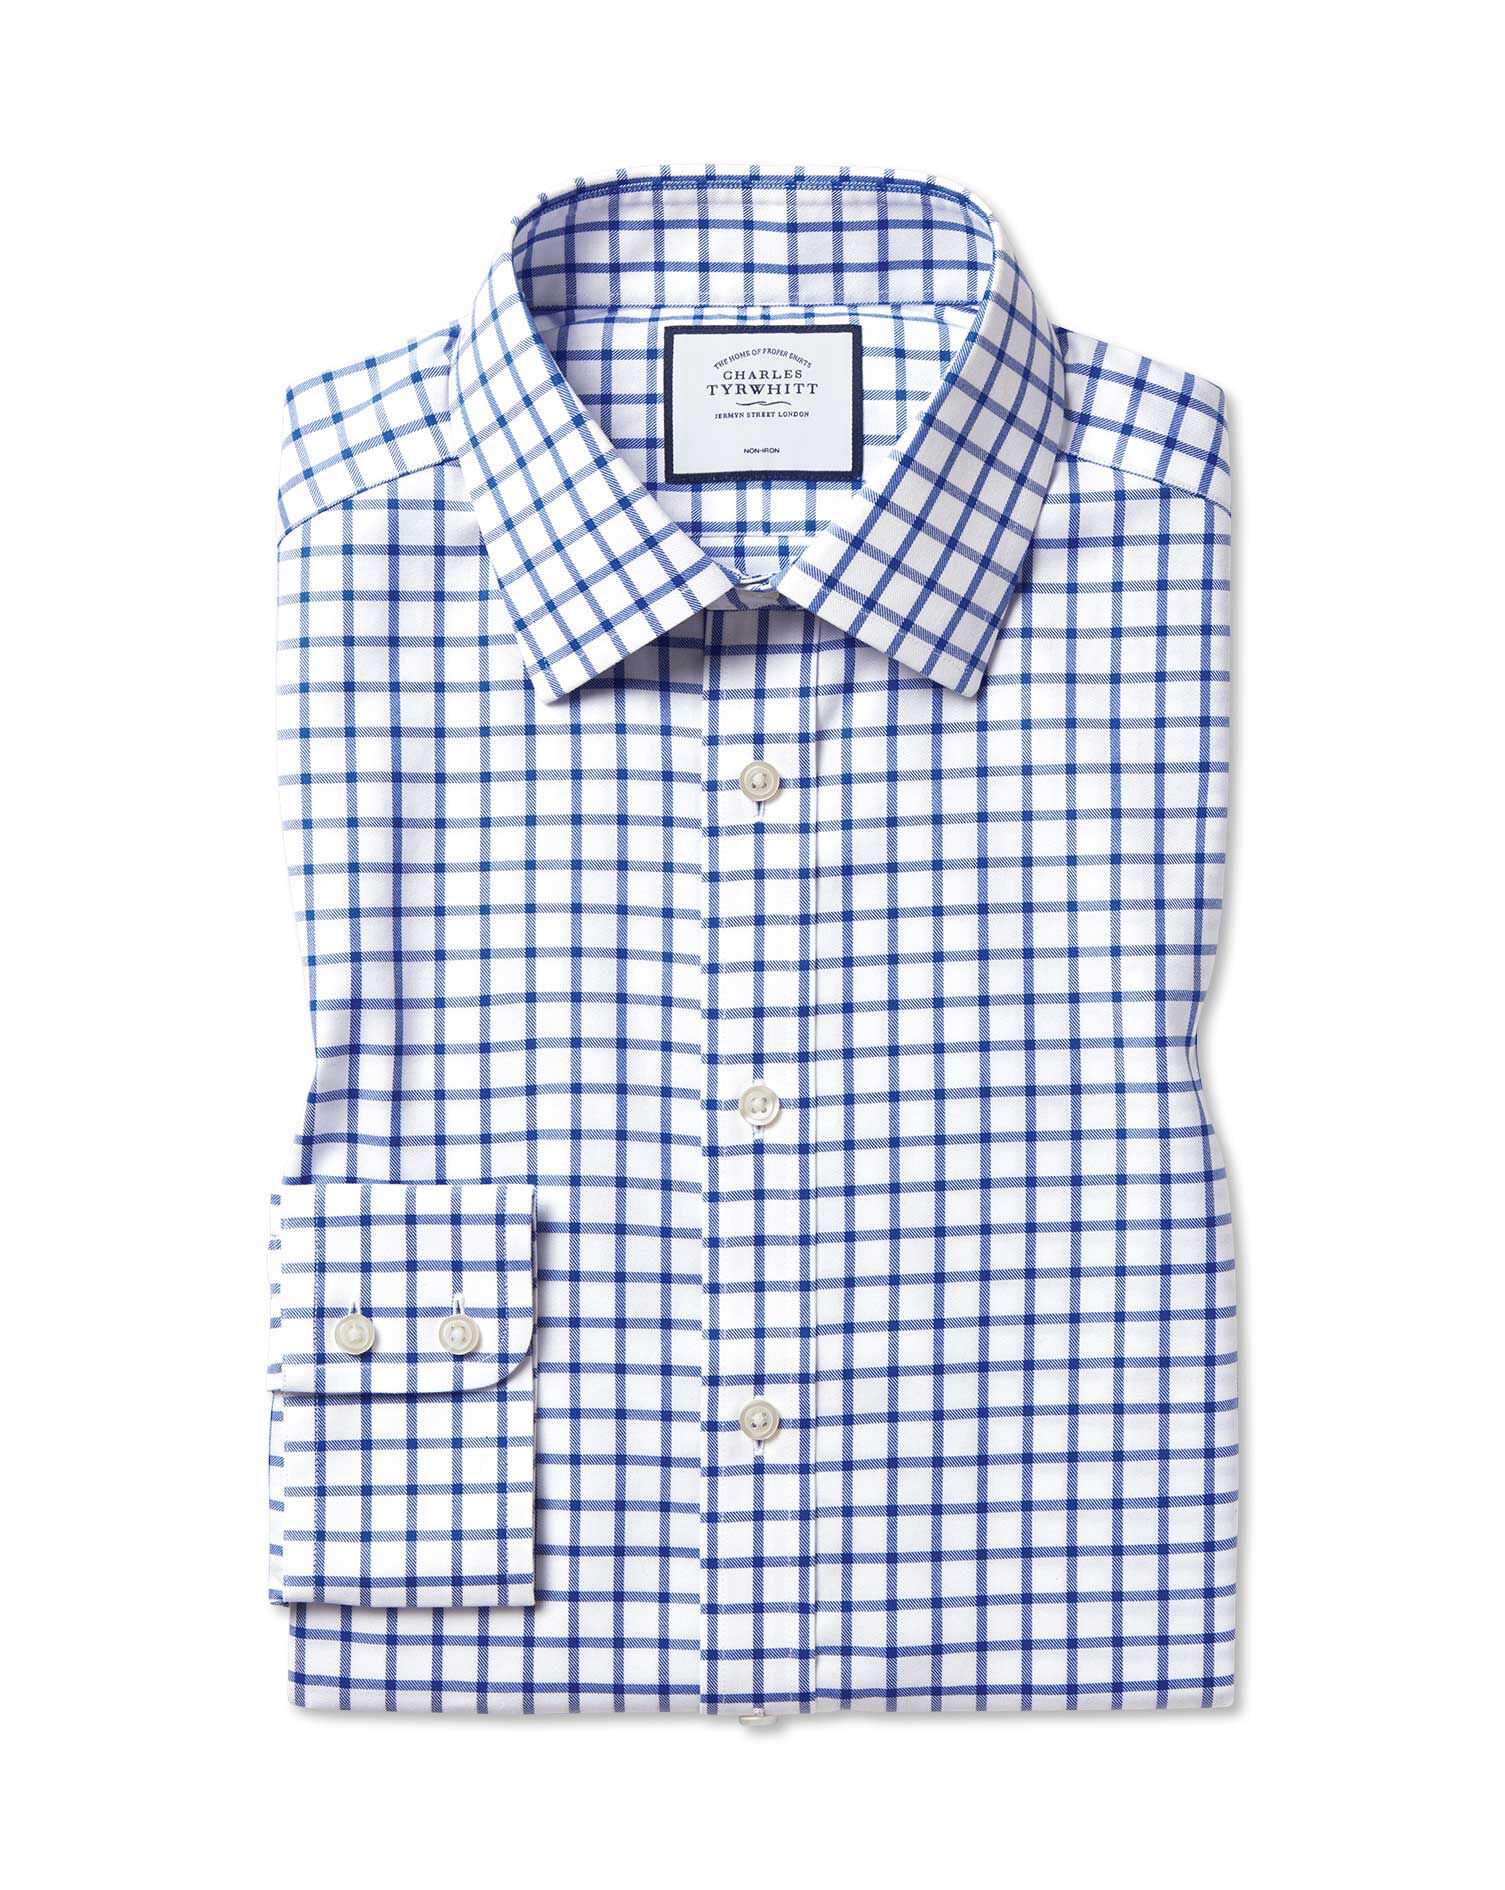 Slim Fit Non-Iron Twill Grid Check Royal Blue Cotton Formal Shirt Single Cuff Size 17/35 by Charles